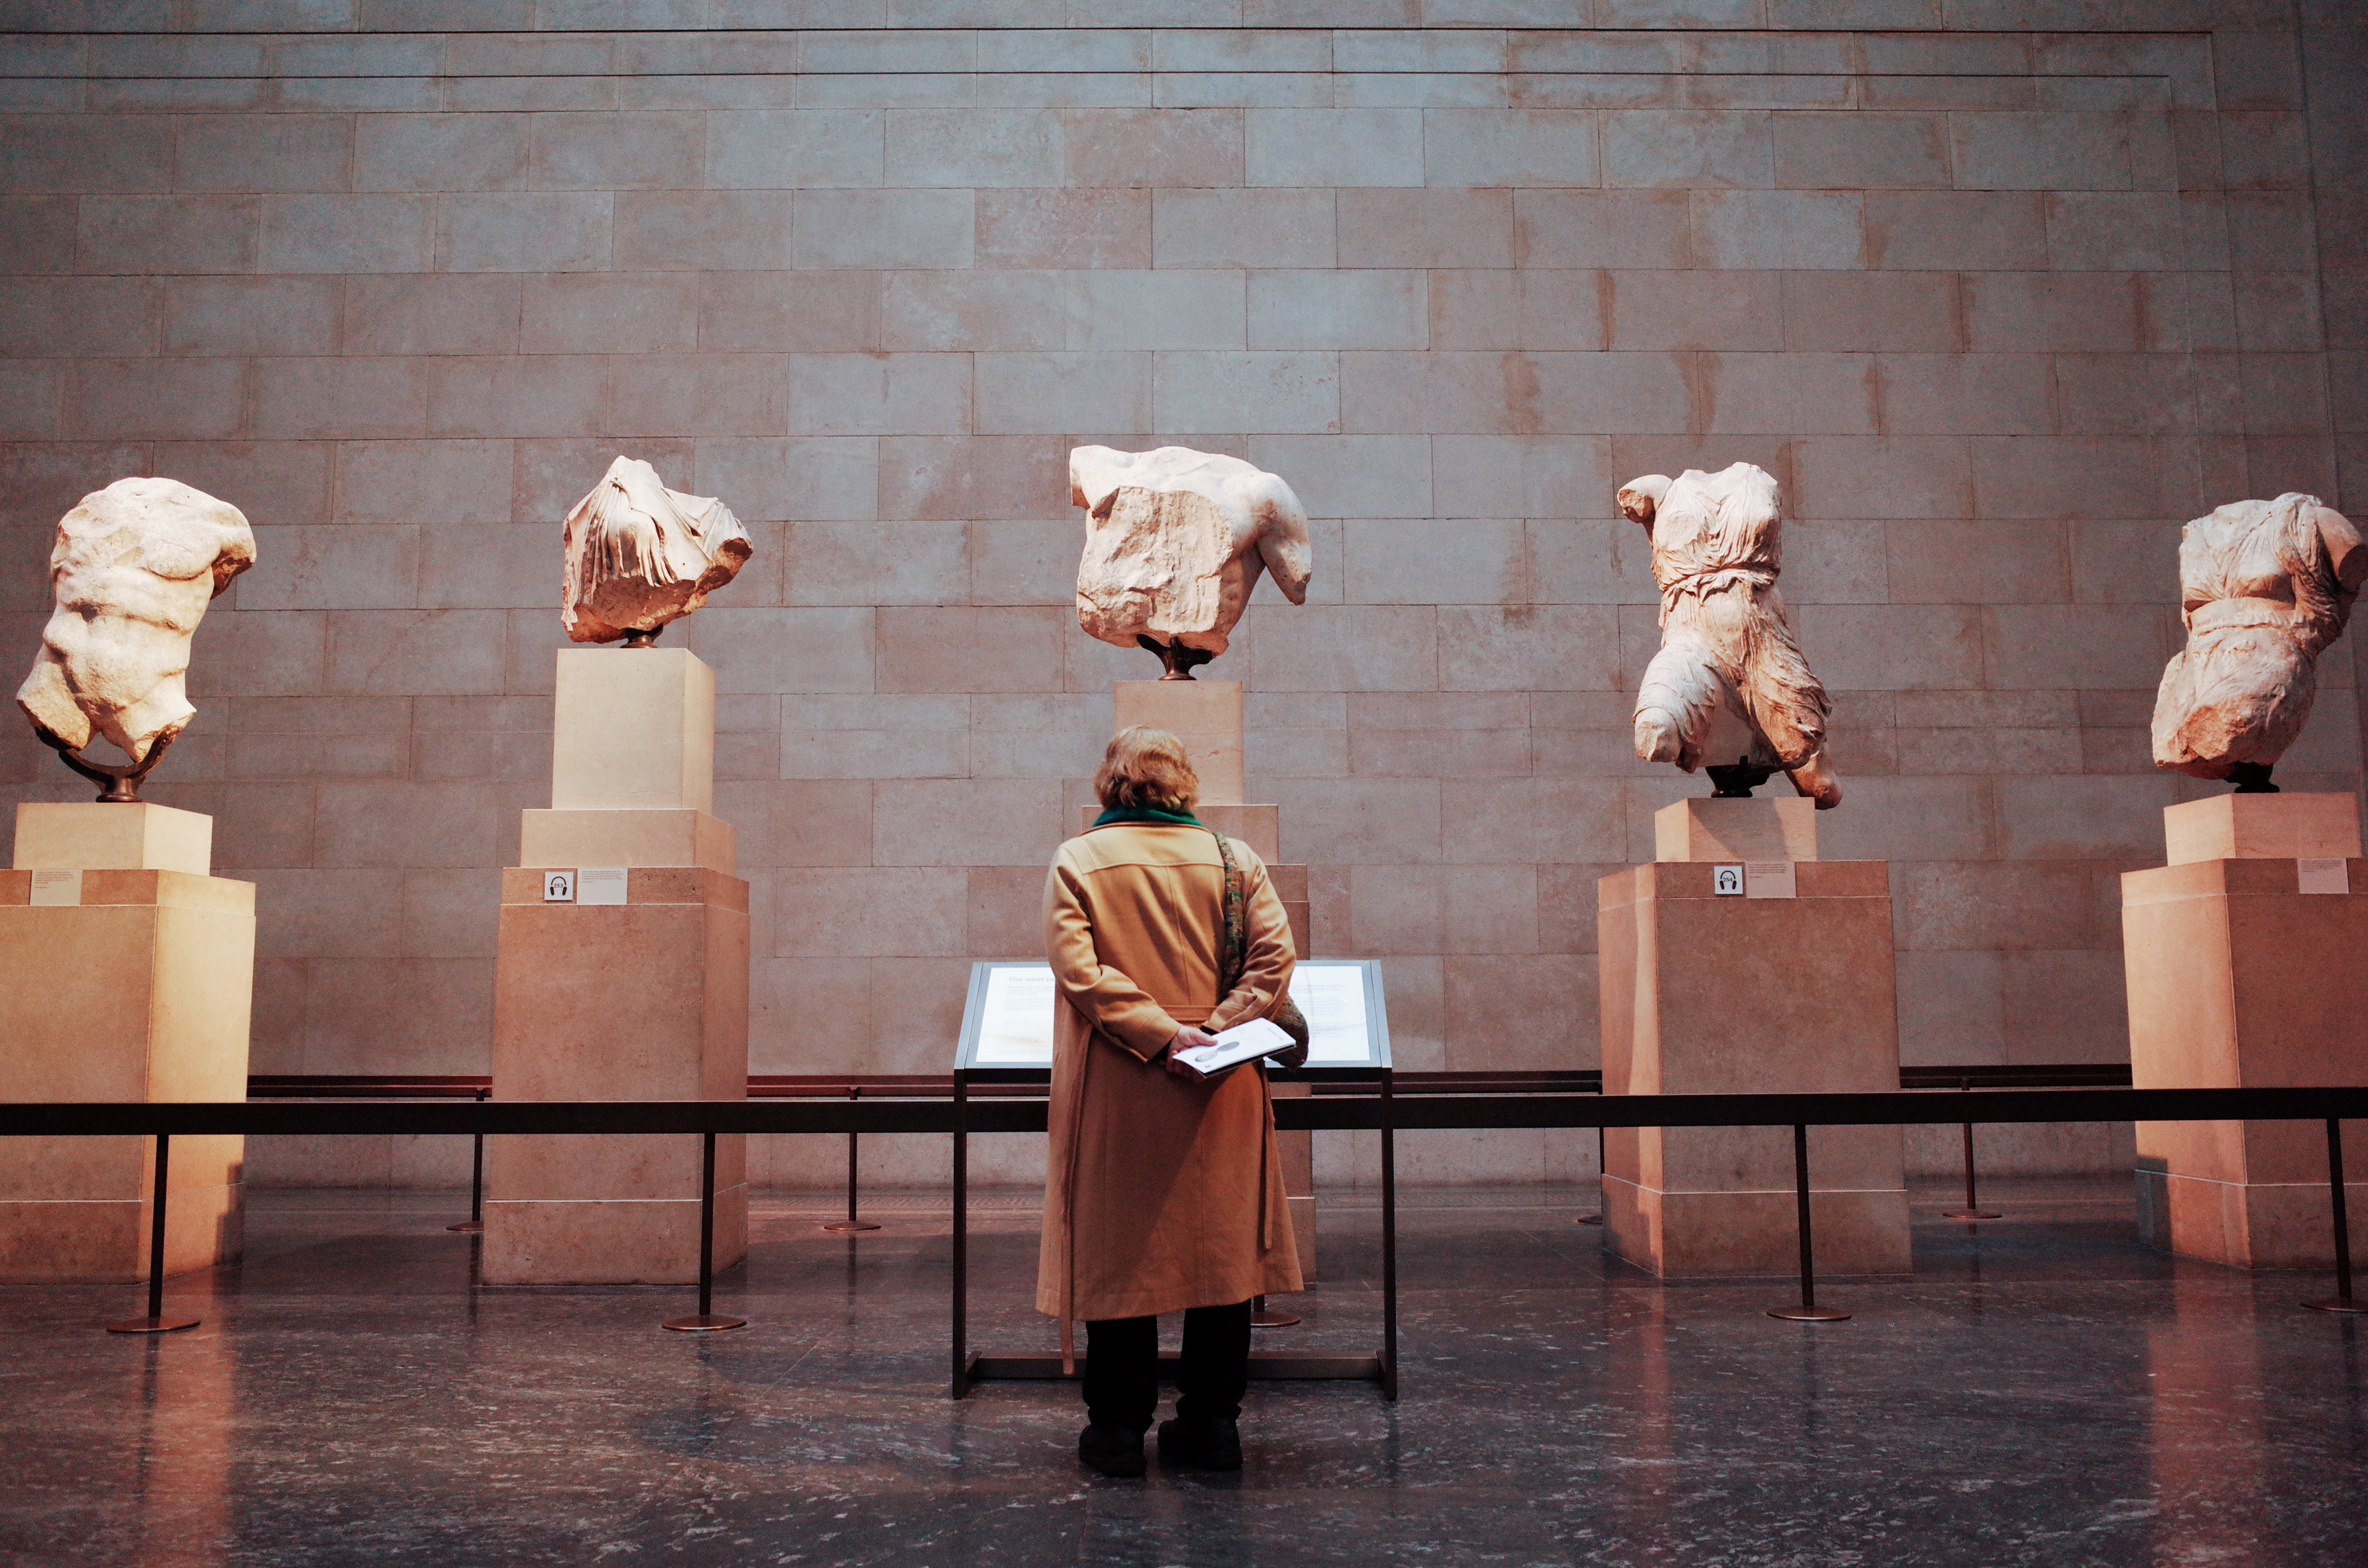 A woman looks at a section of the Parthenon Sculptures exhibit in the British Museum in London, England, on February 13, 2020.